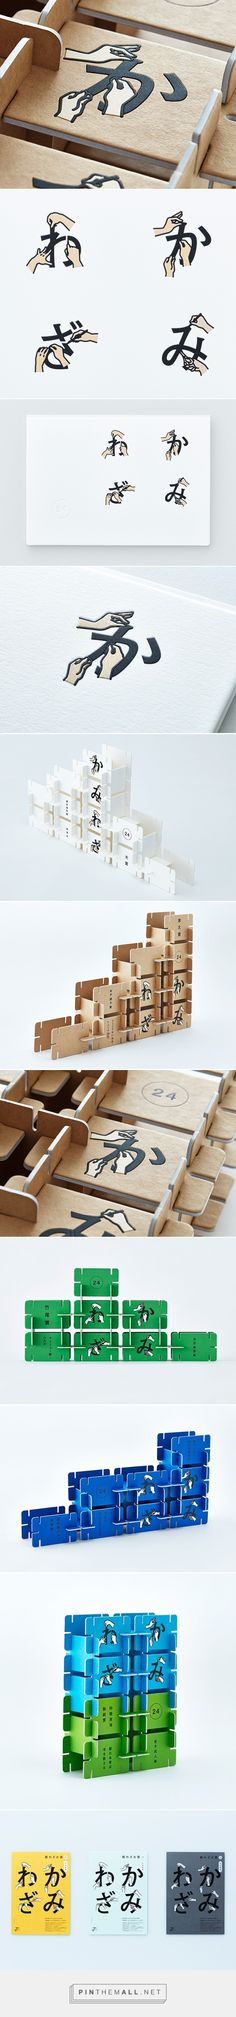 kamiwaza paper craft awards identity by 6D